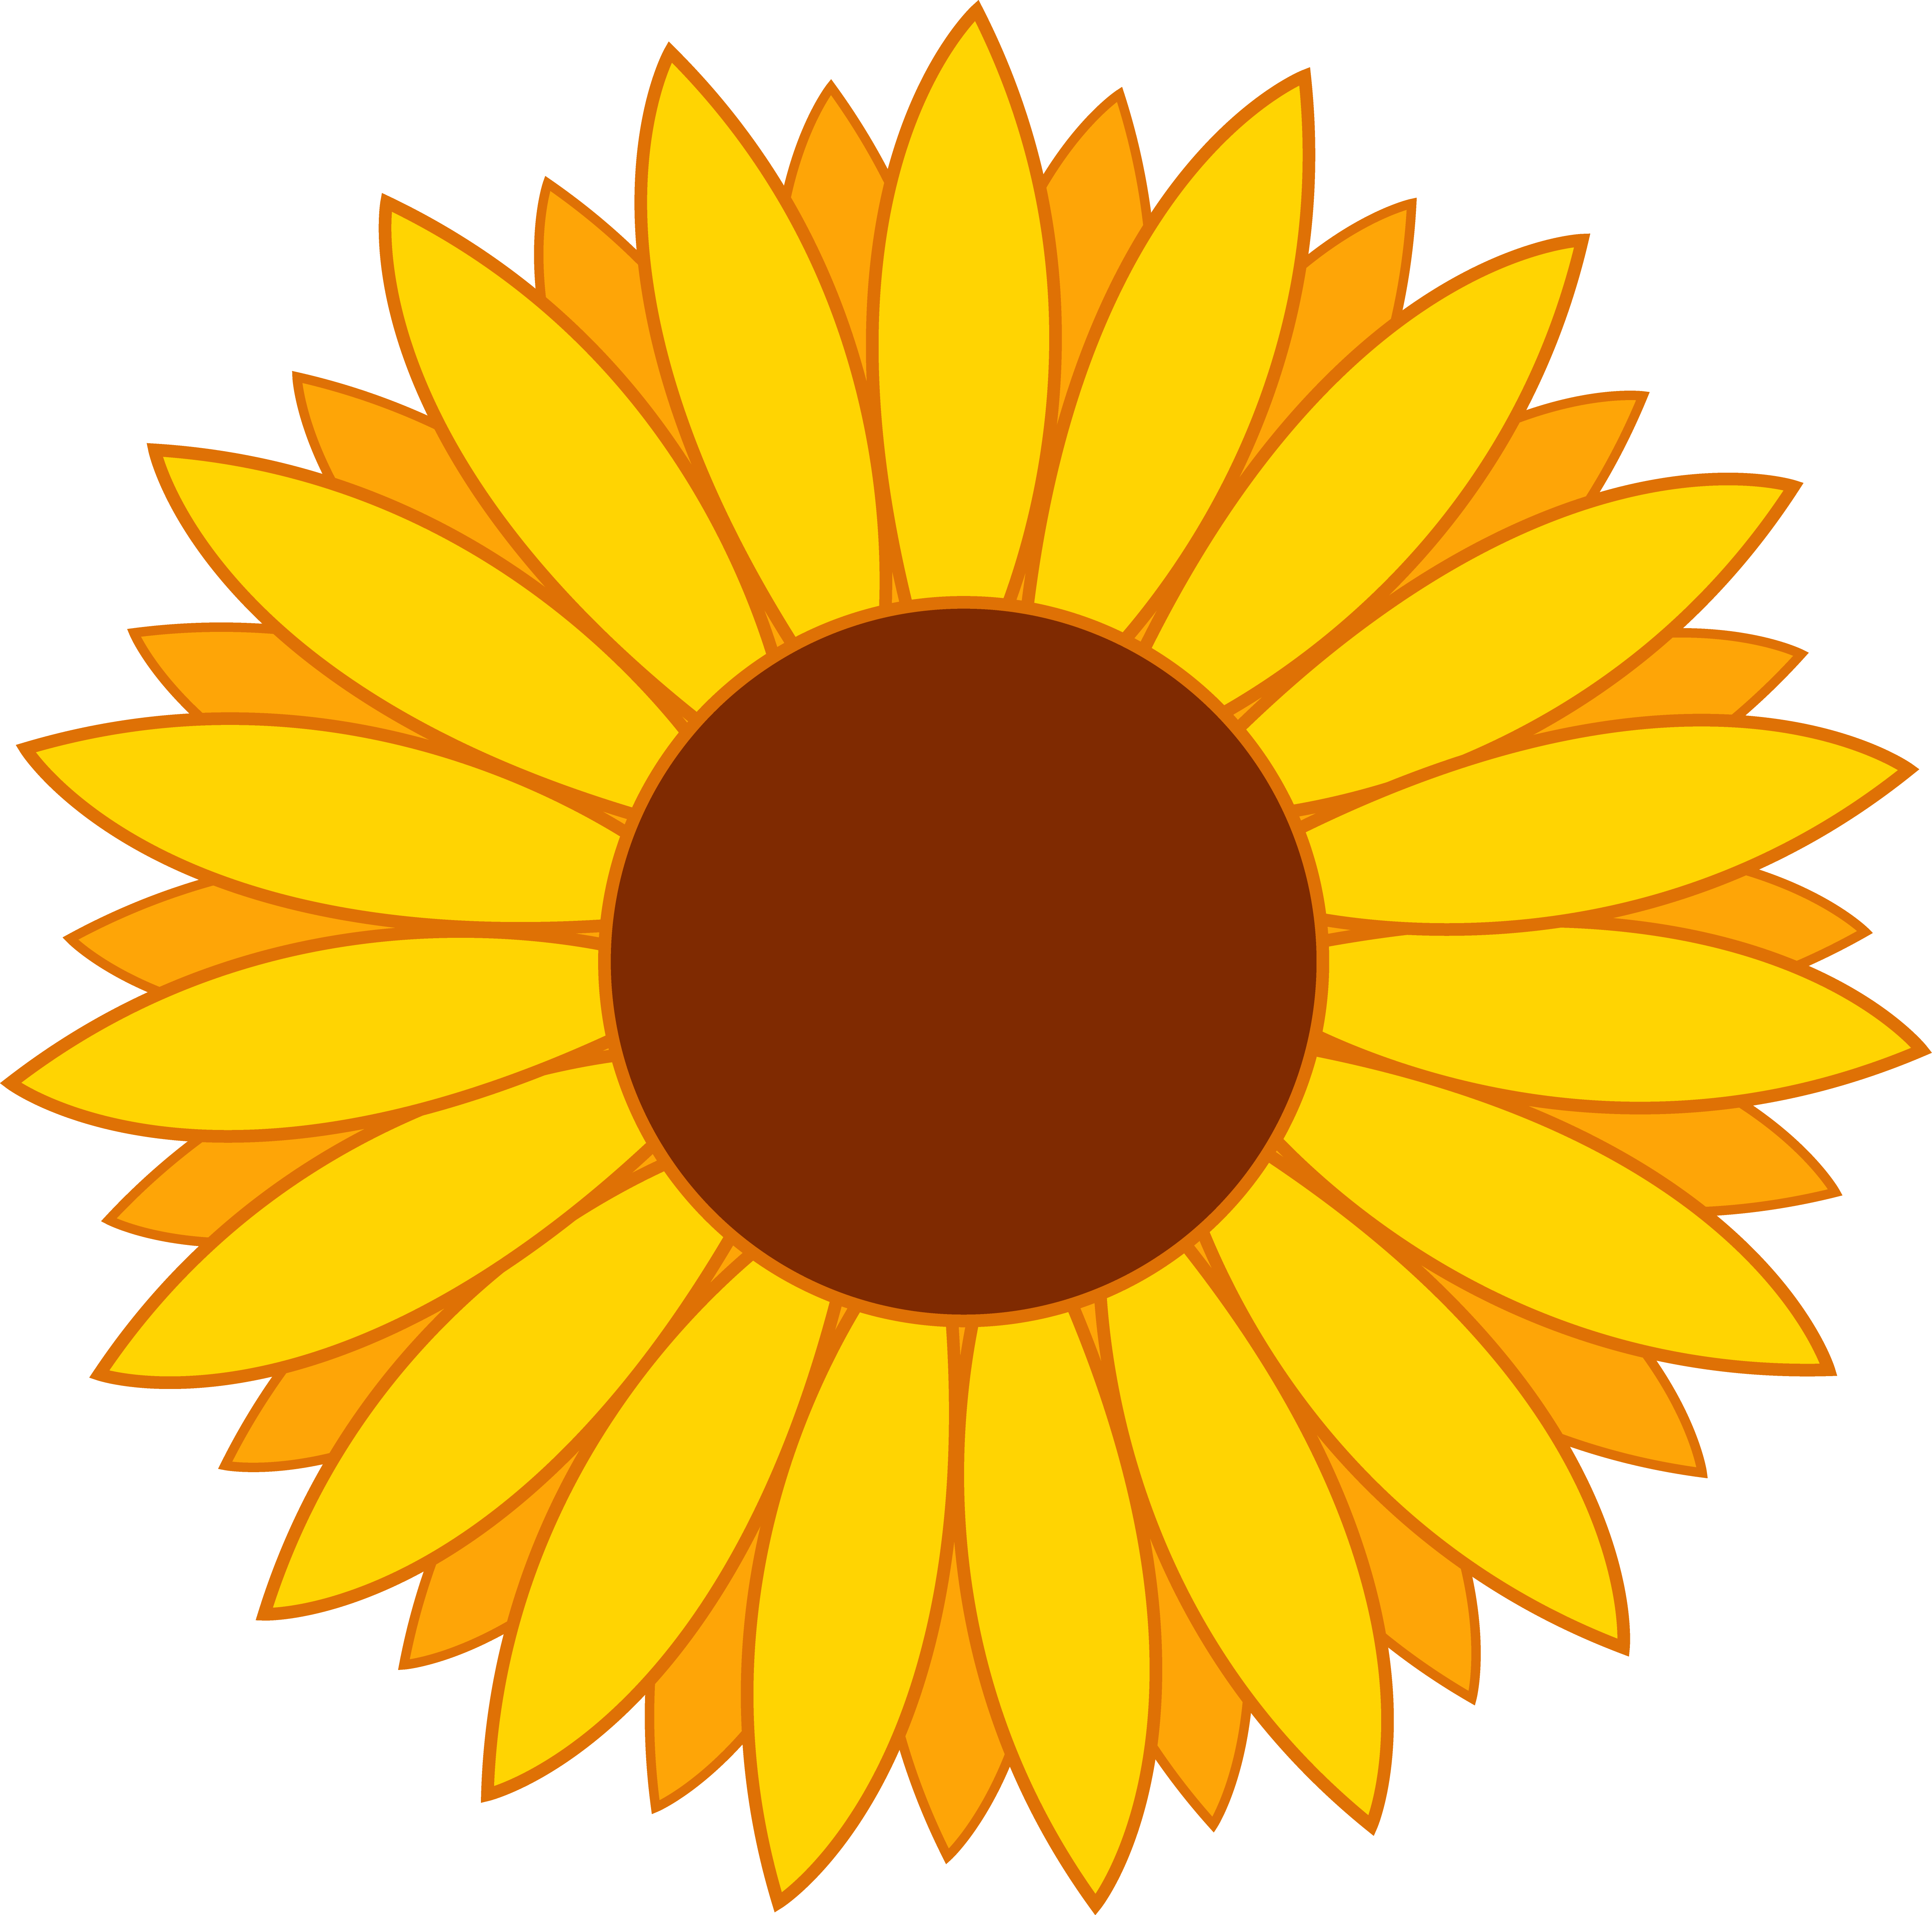 sunflower clip art free printable clipart panda free sunflower clip art free sunflower clip art outline